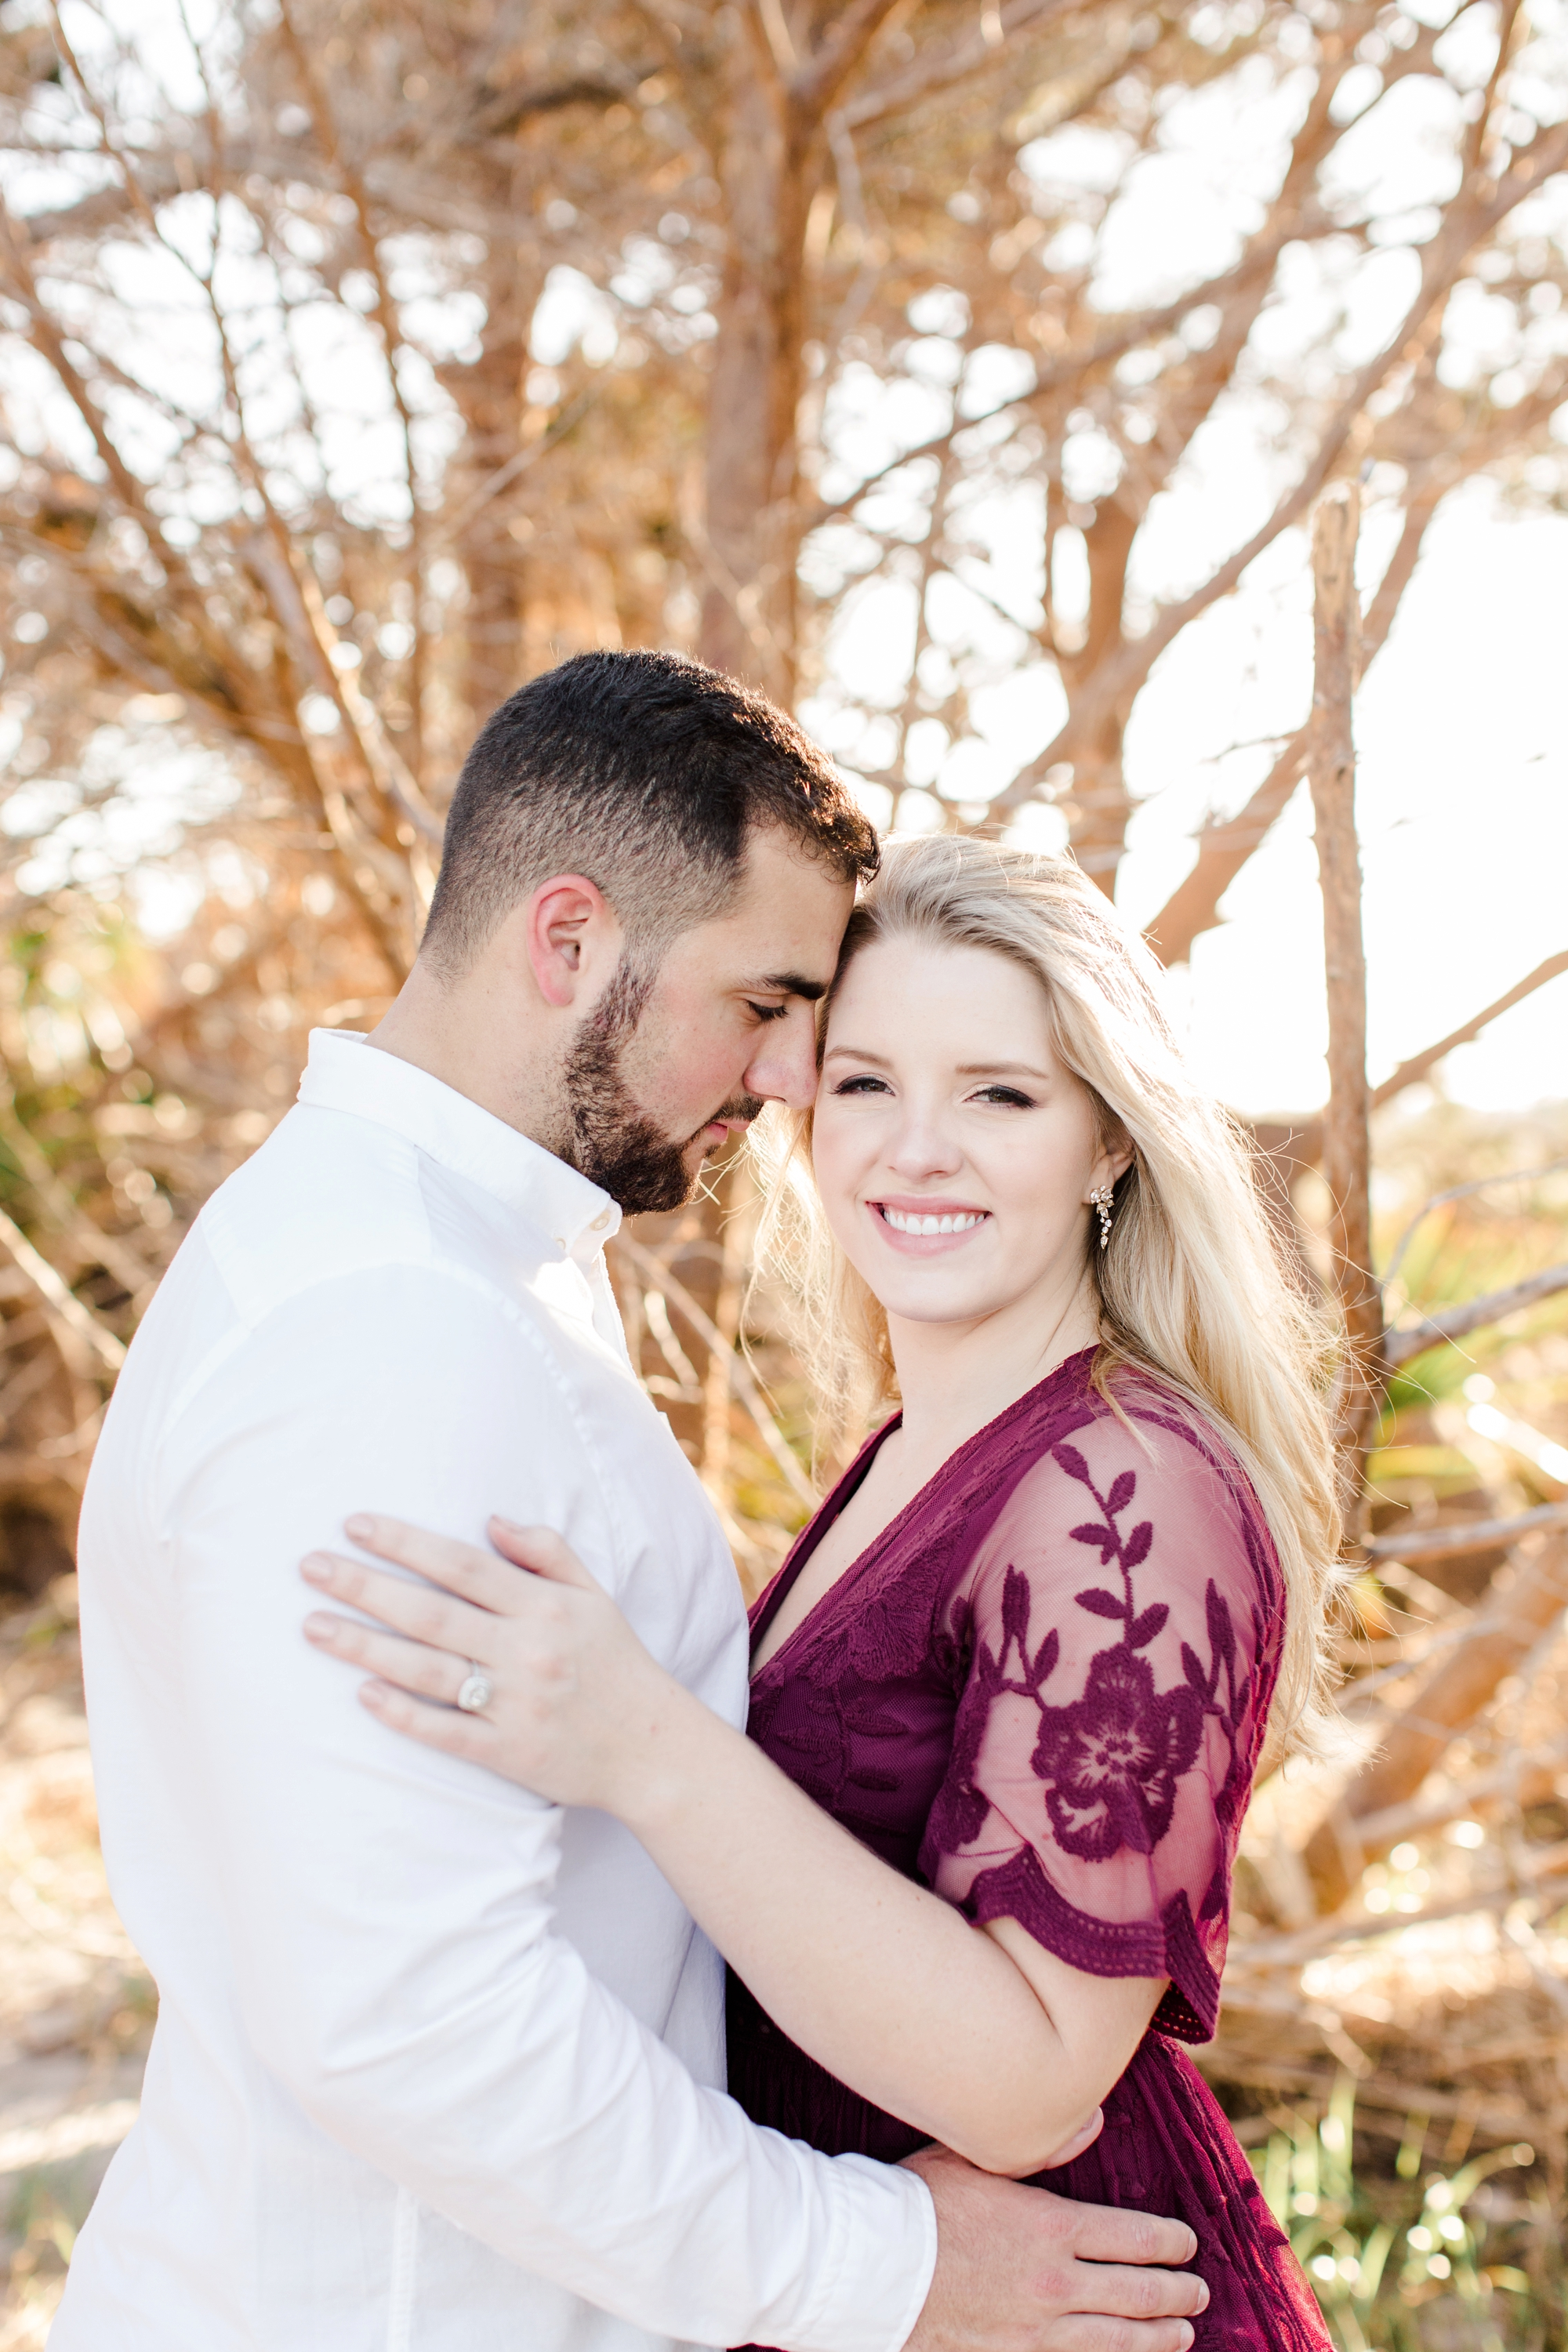 Natalie Broach Photography-Steven & Lauren Engagement Session, Big Talbot Island. Jacksonville Florida